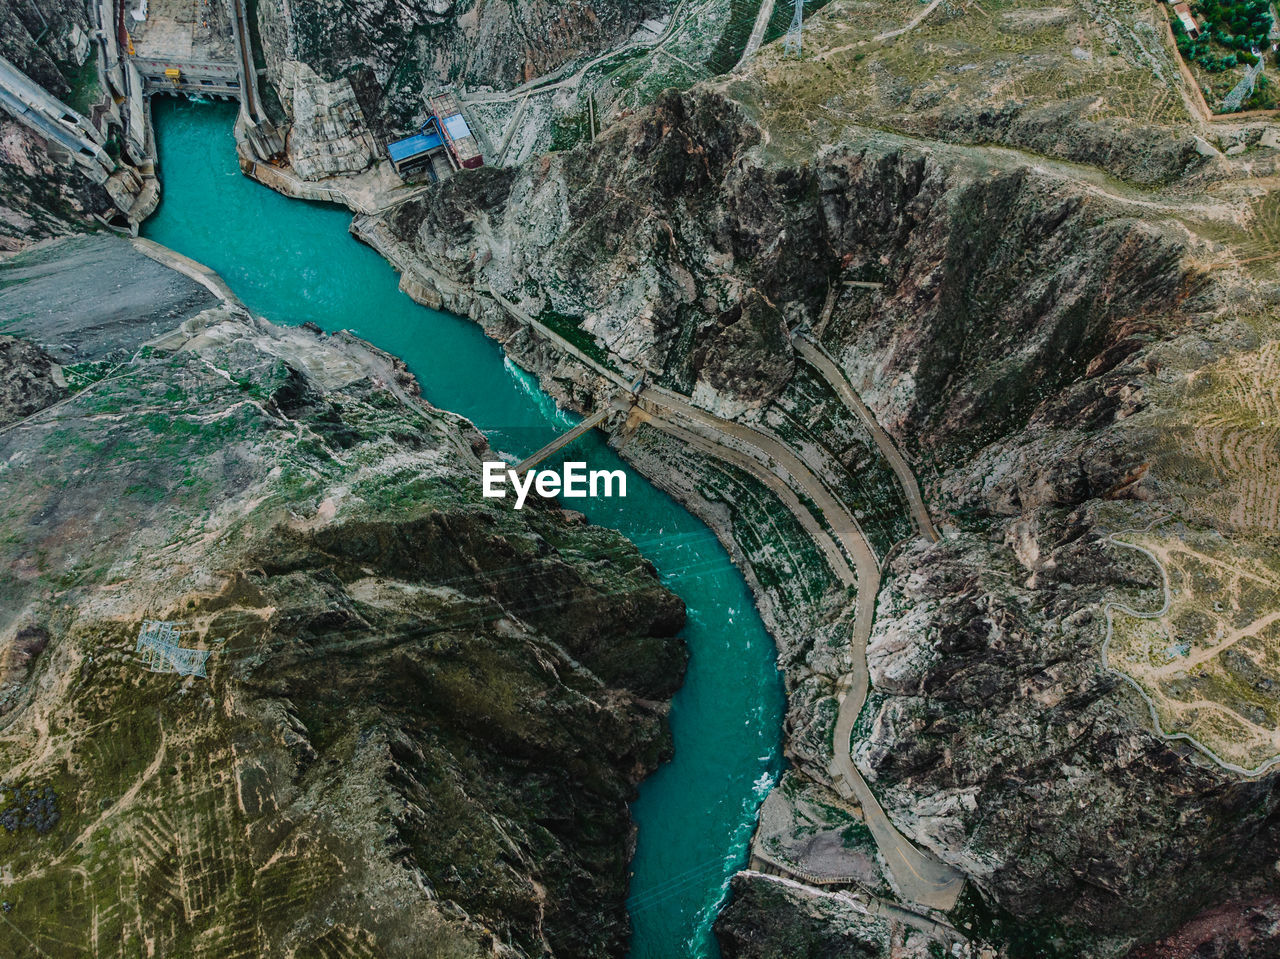 High Angle View Of River Amidst Rocky Mountain